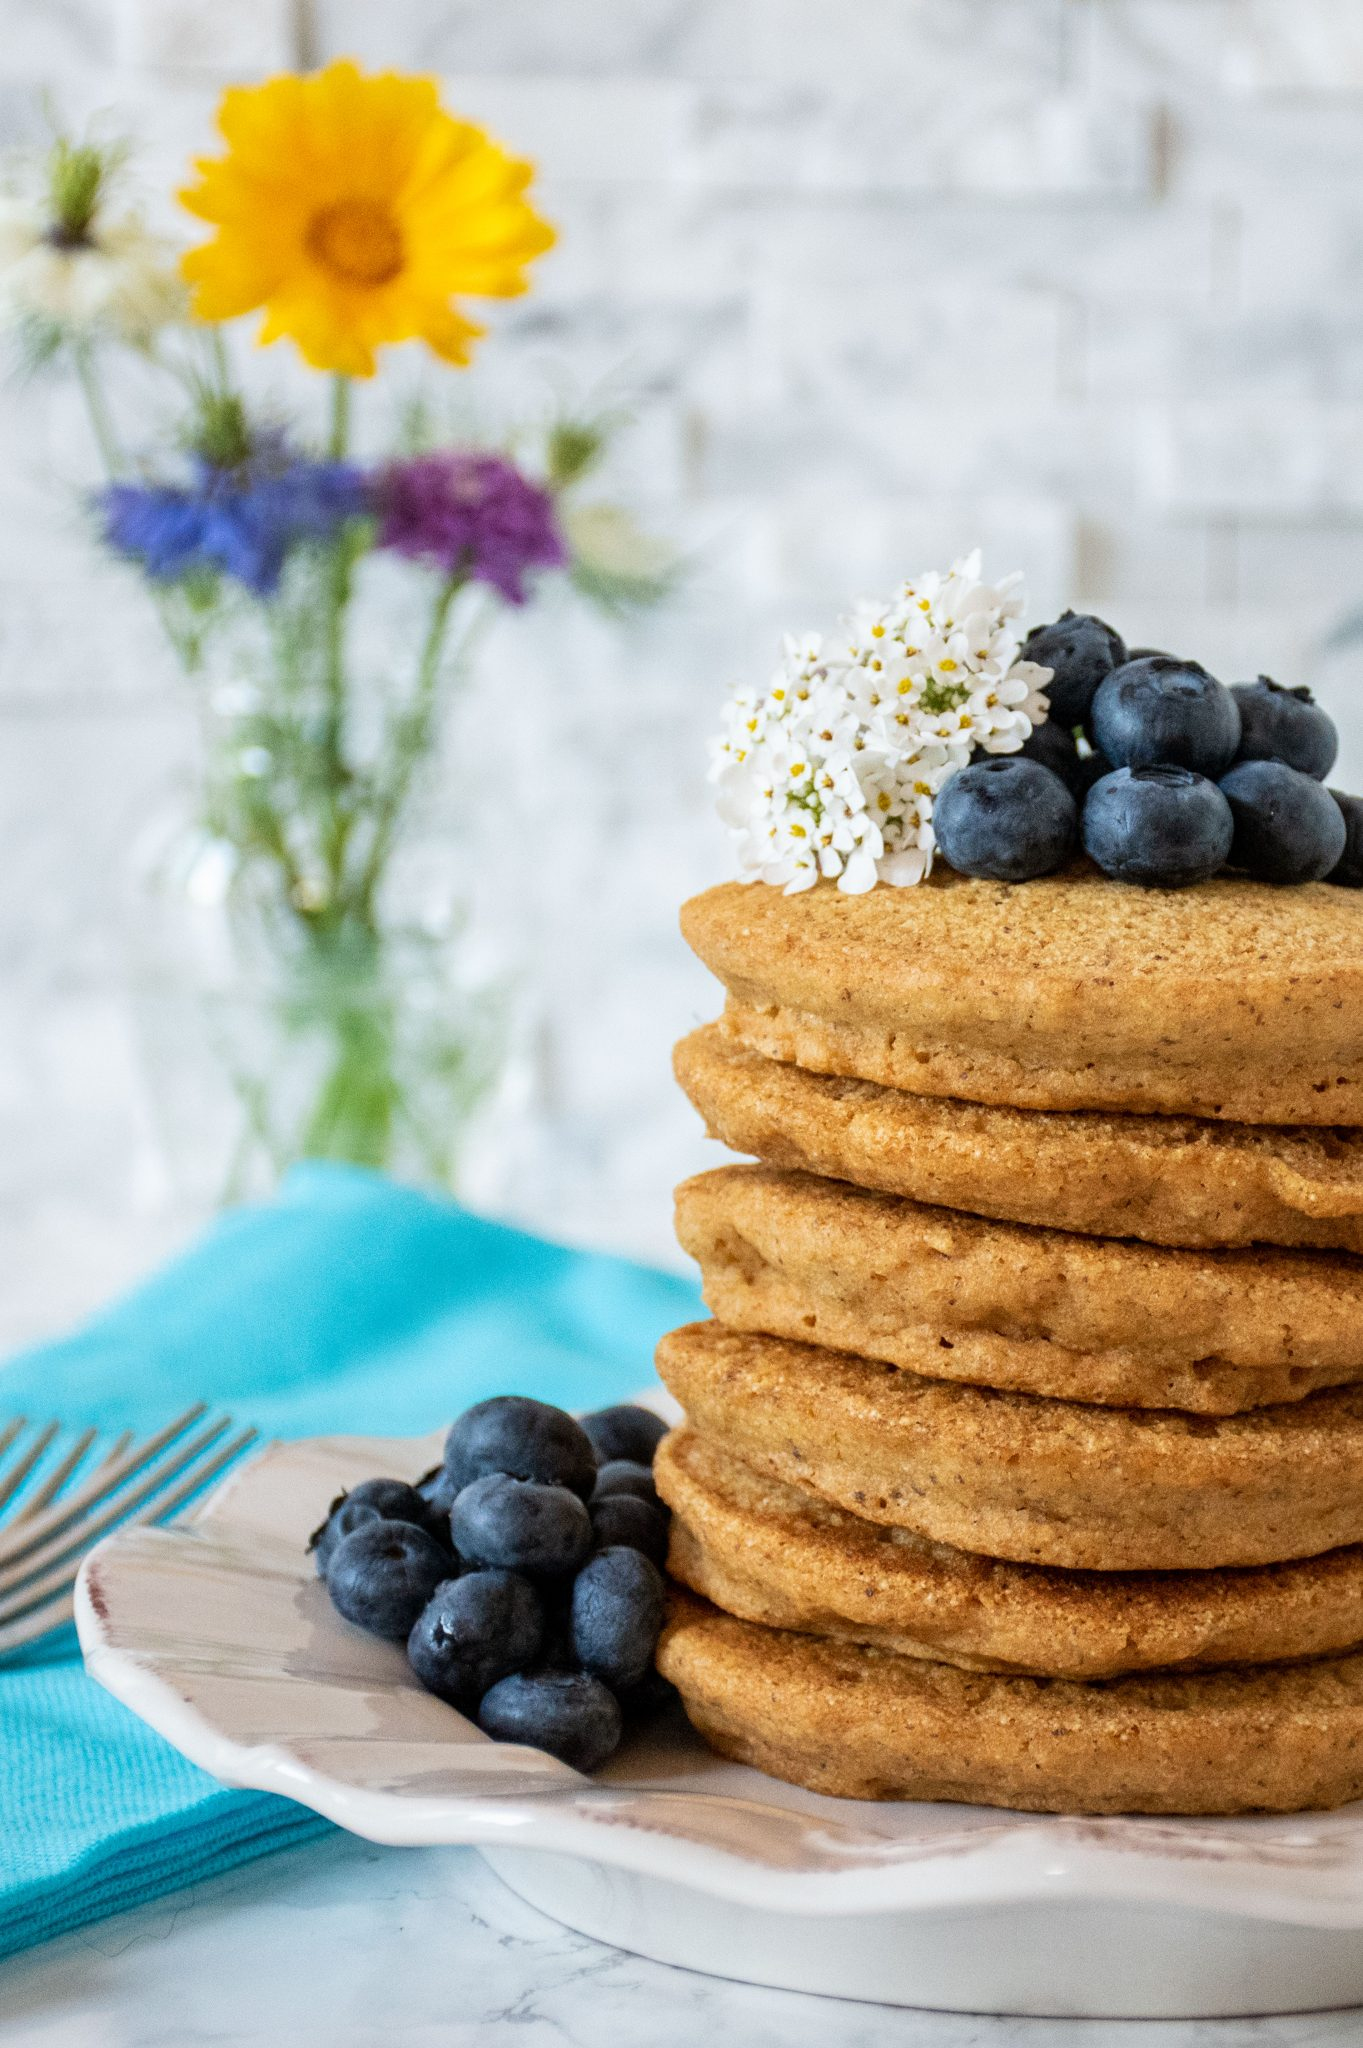 Stack of 6 whole wheat pancakes, with a pile of fresh blueberries and white flowers on top. A small bouquet of wildflowers is visible in the background.